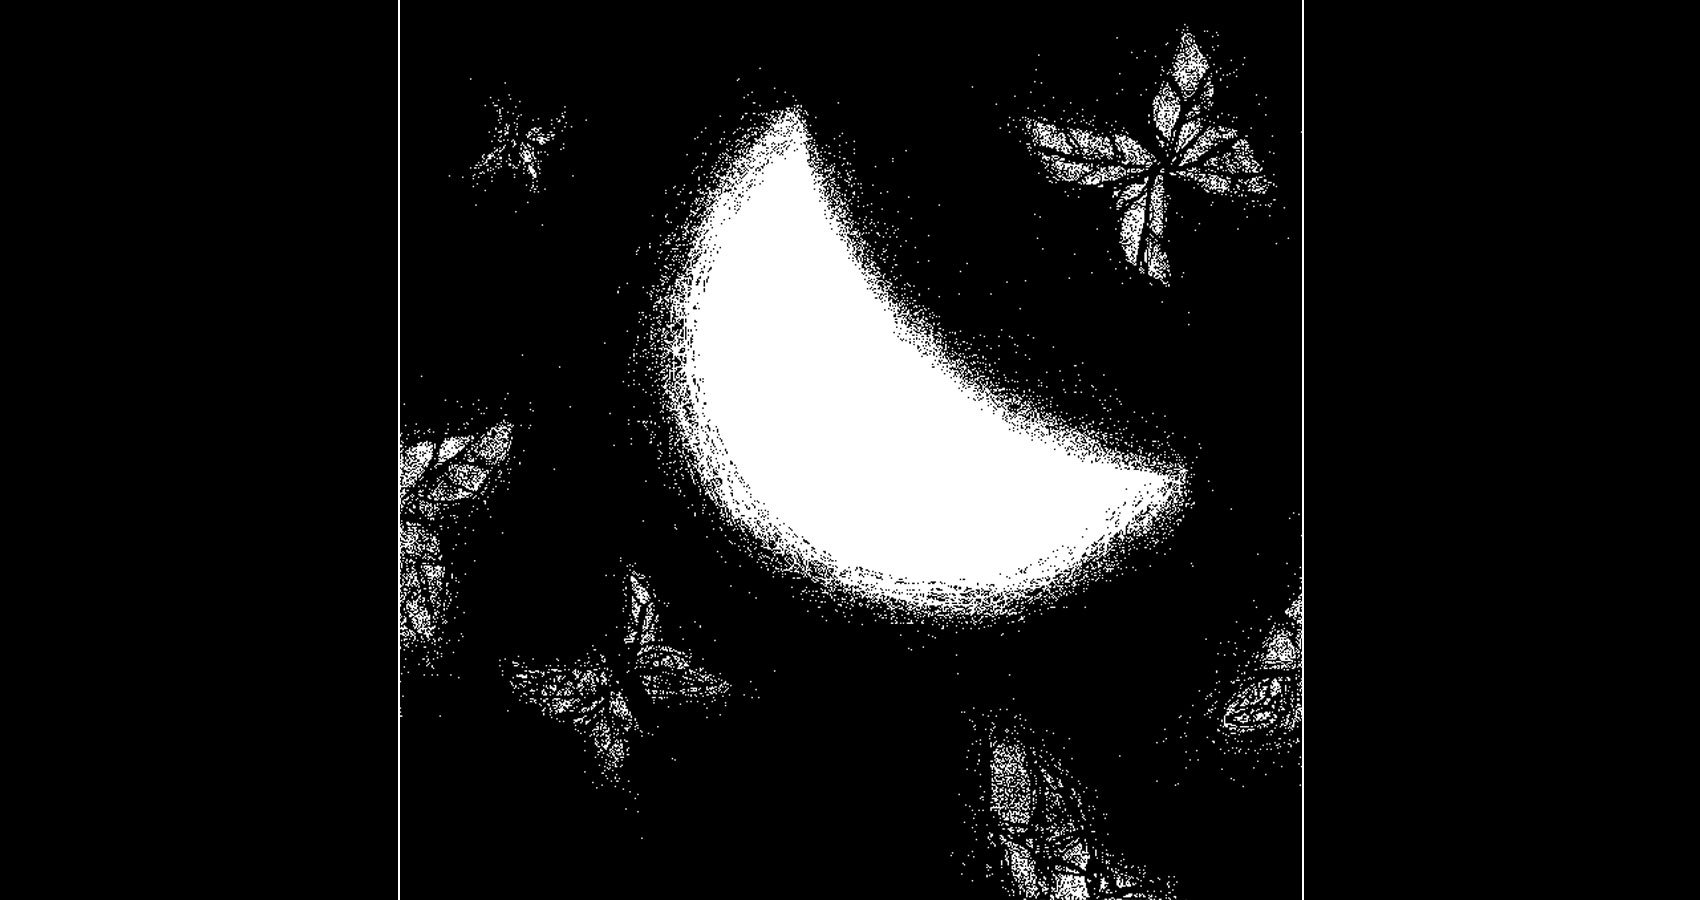 Last Half of Moonlight by Robyn MacKinnon at Spillwords.com